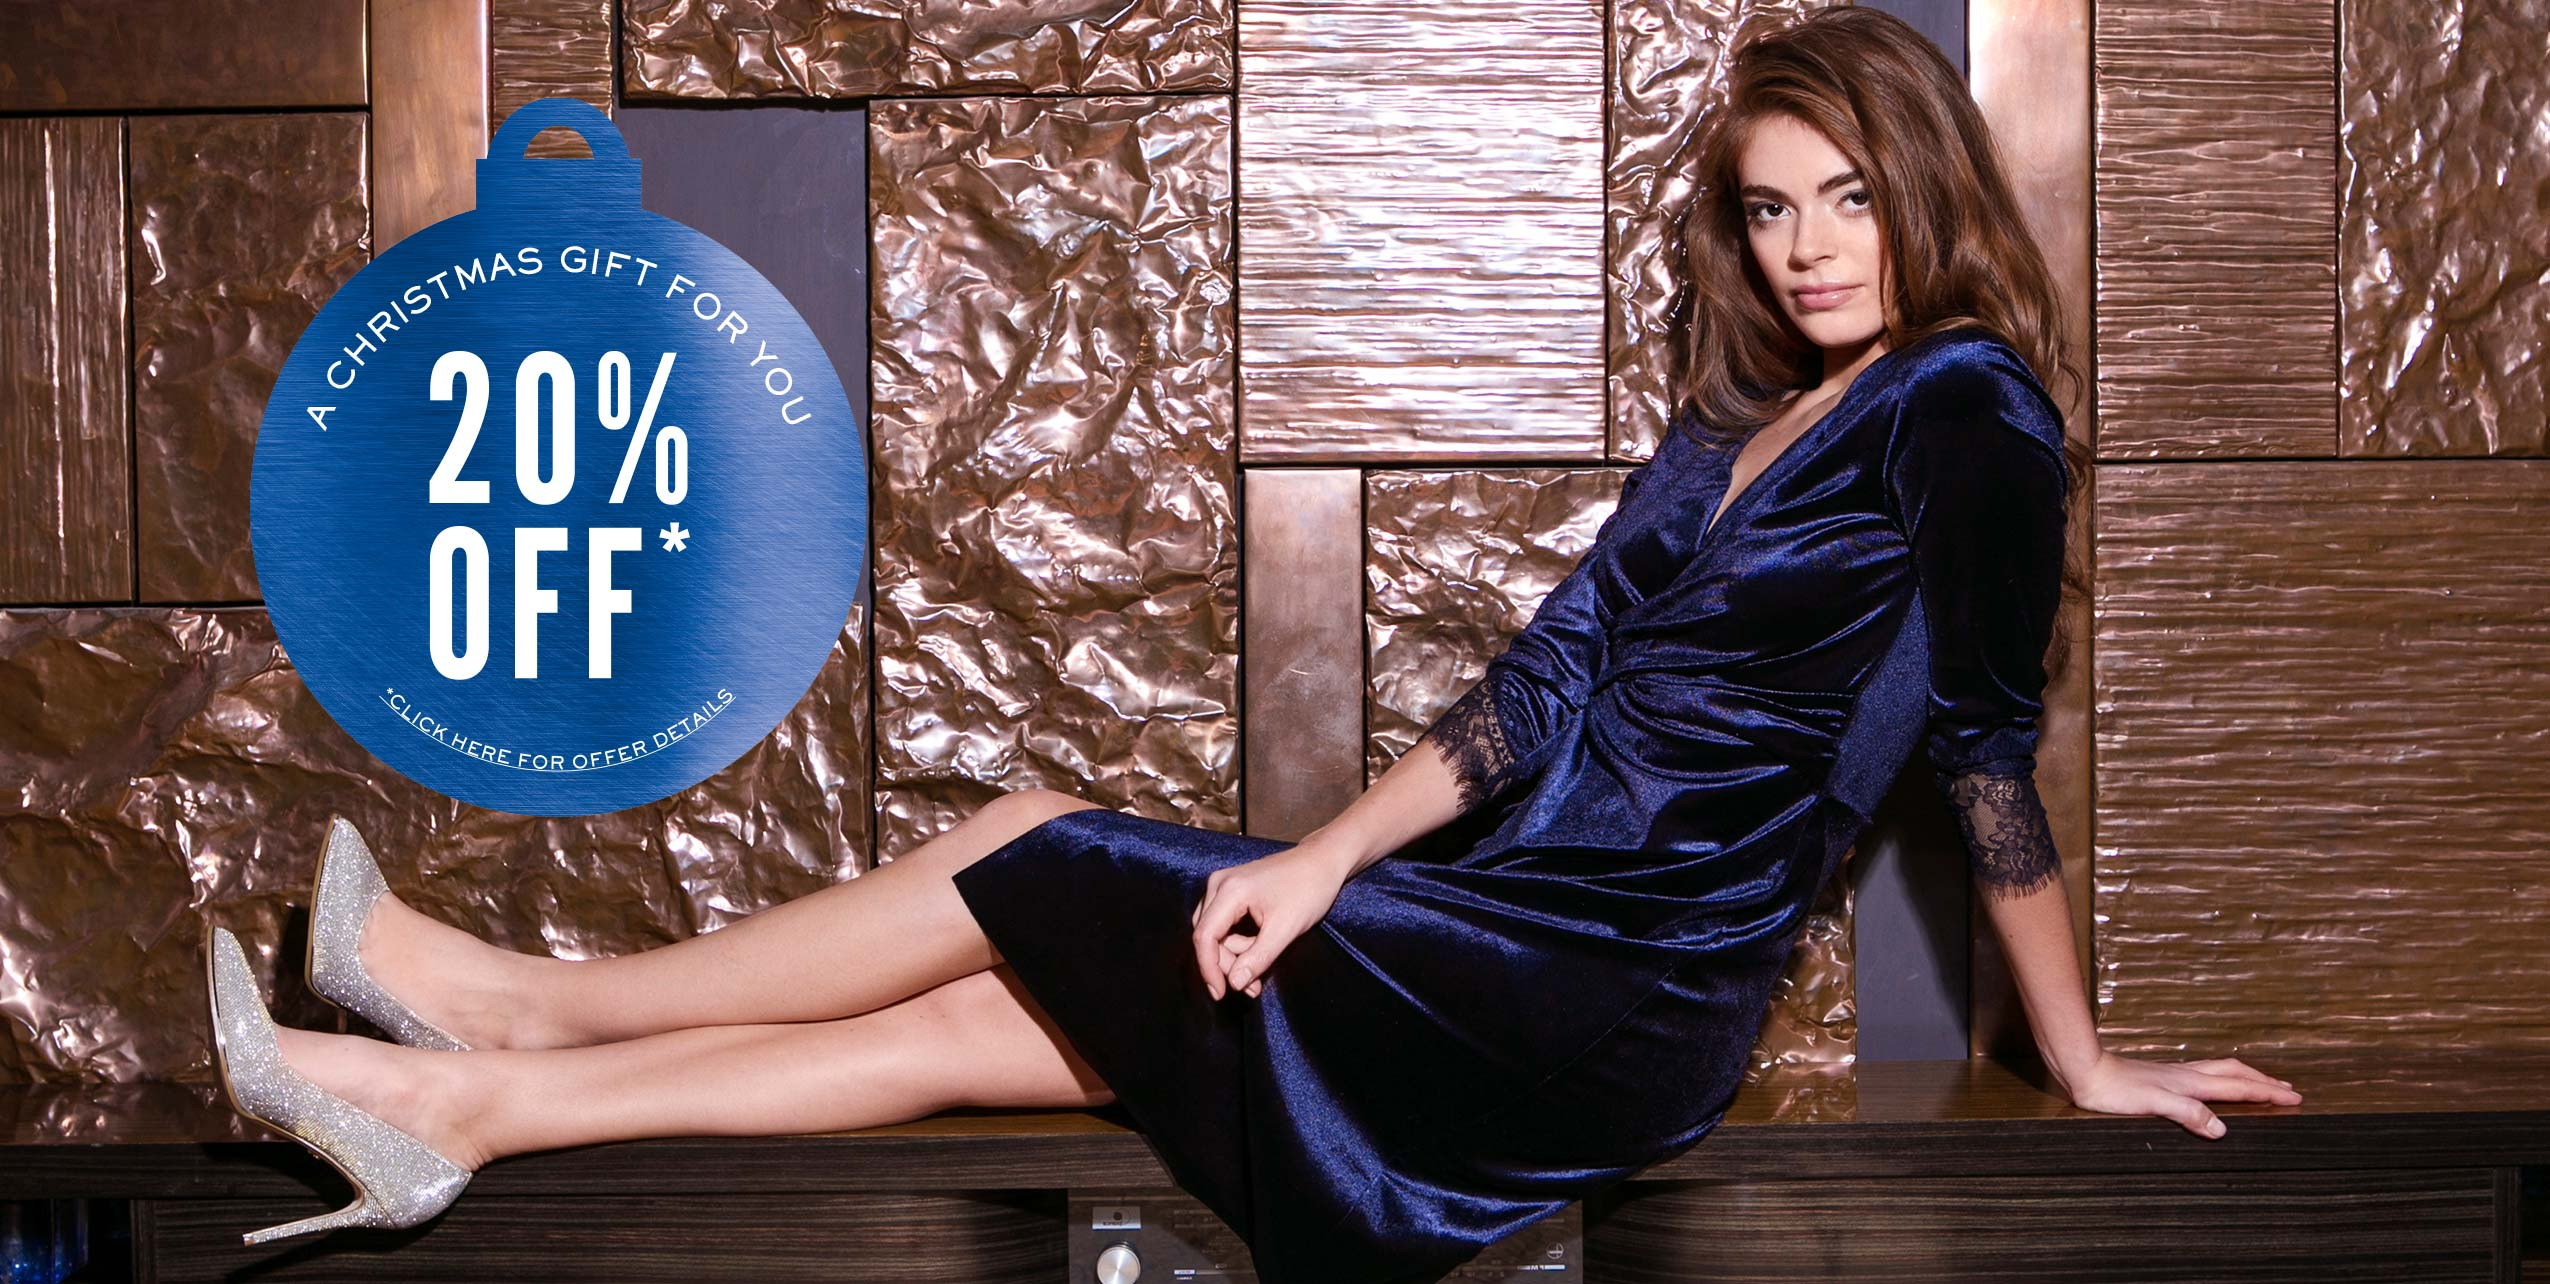 A Christmas Gift For You:  20% Off